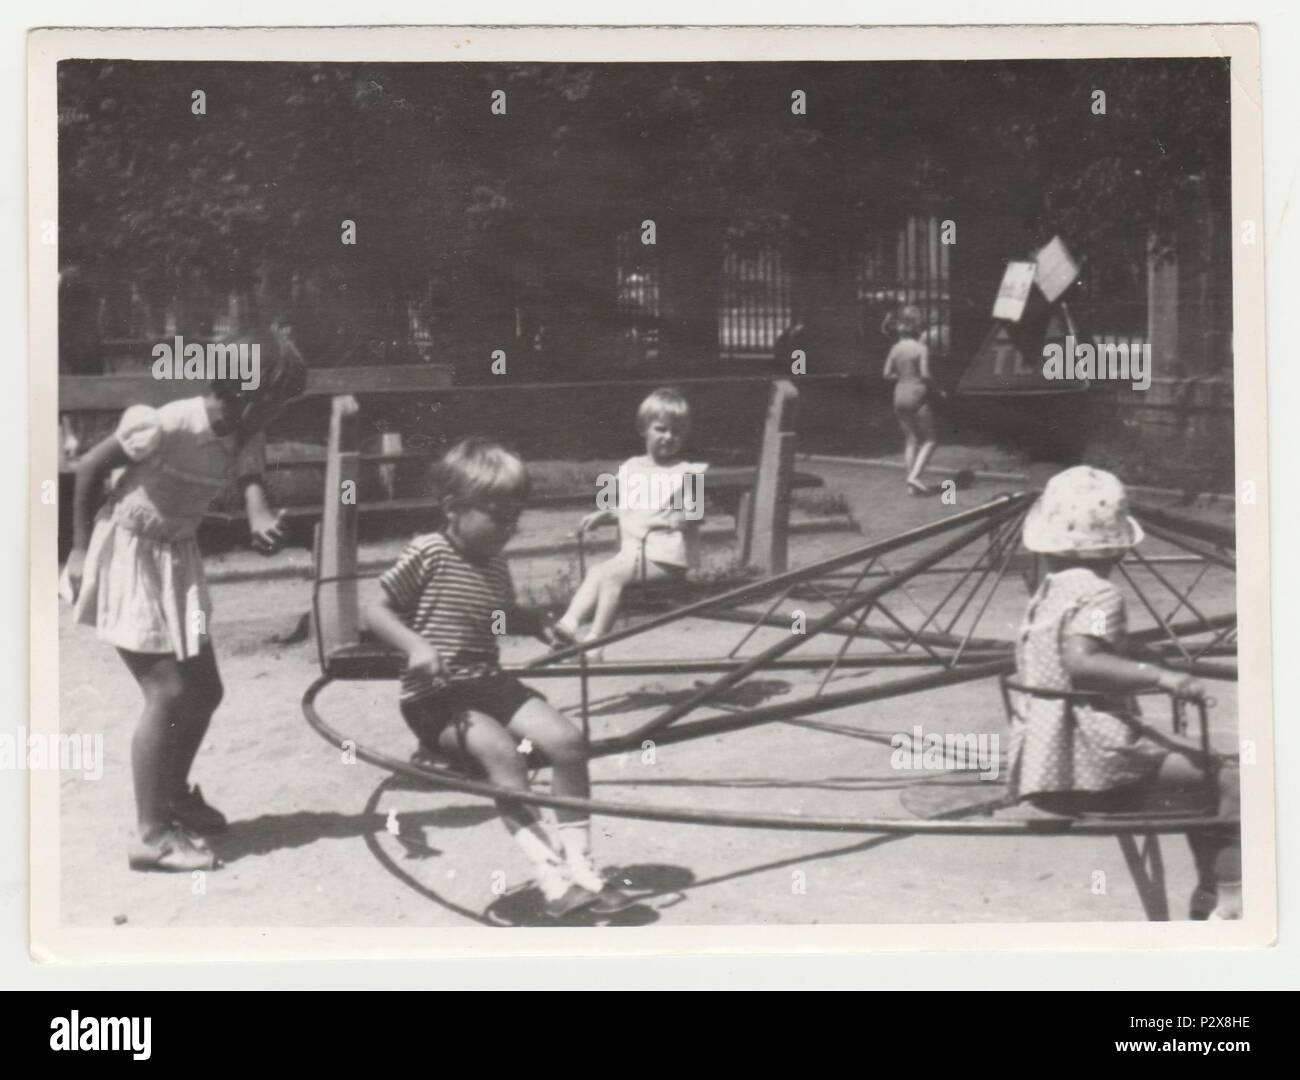 Children Playground 1960s Stock Photos Amp Children